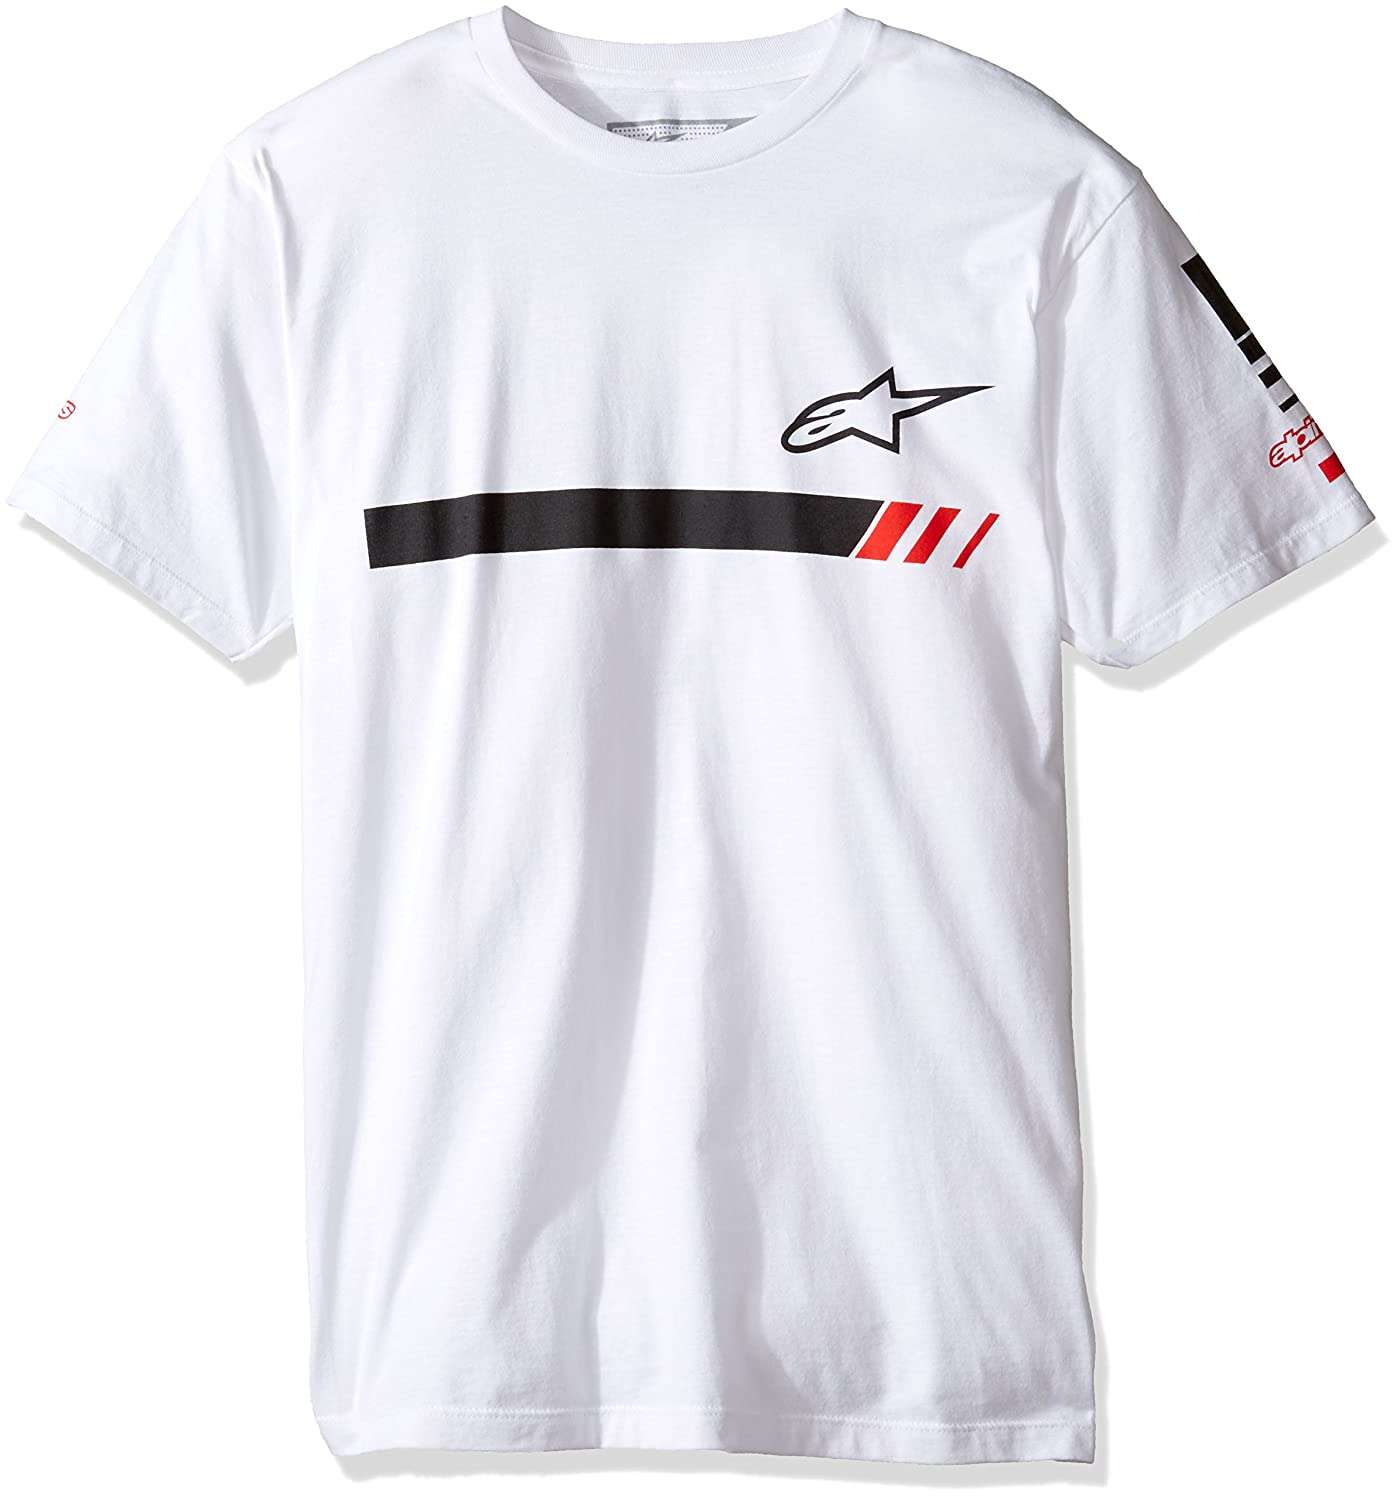 ALPINESTARS Men's Gp Tee